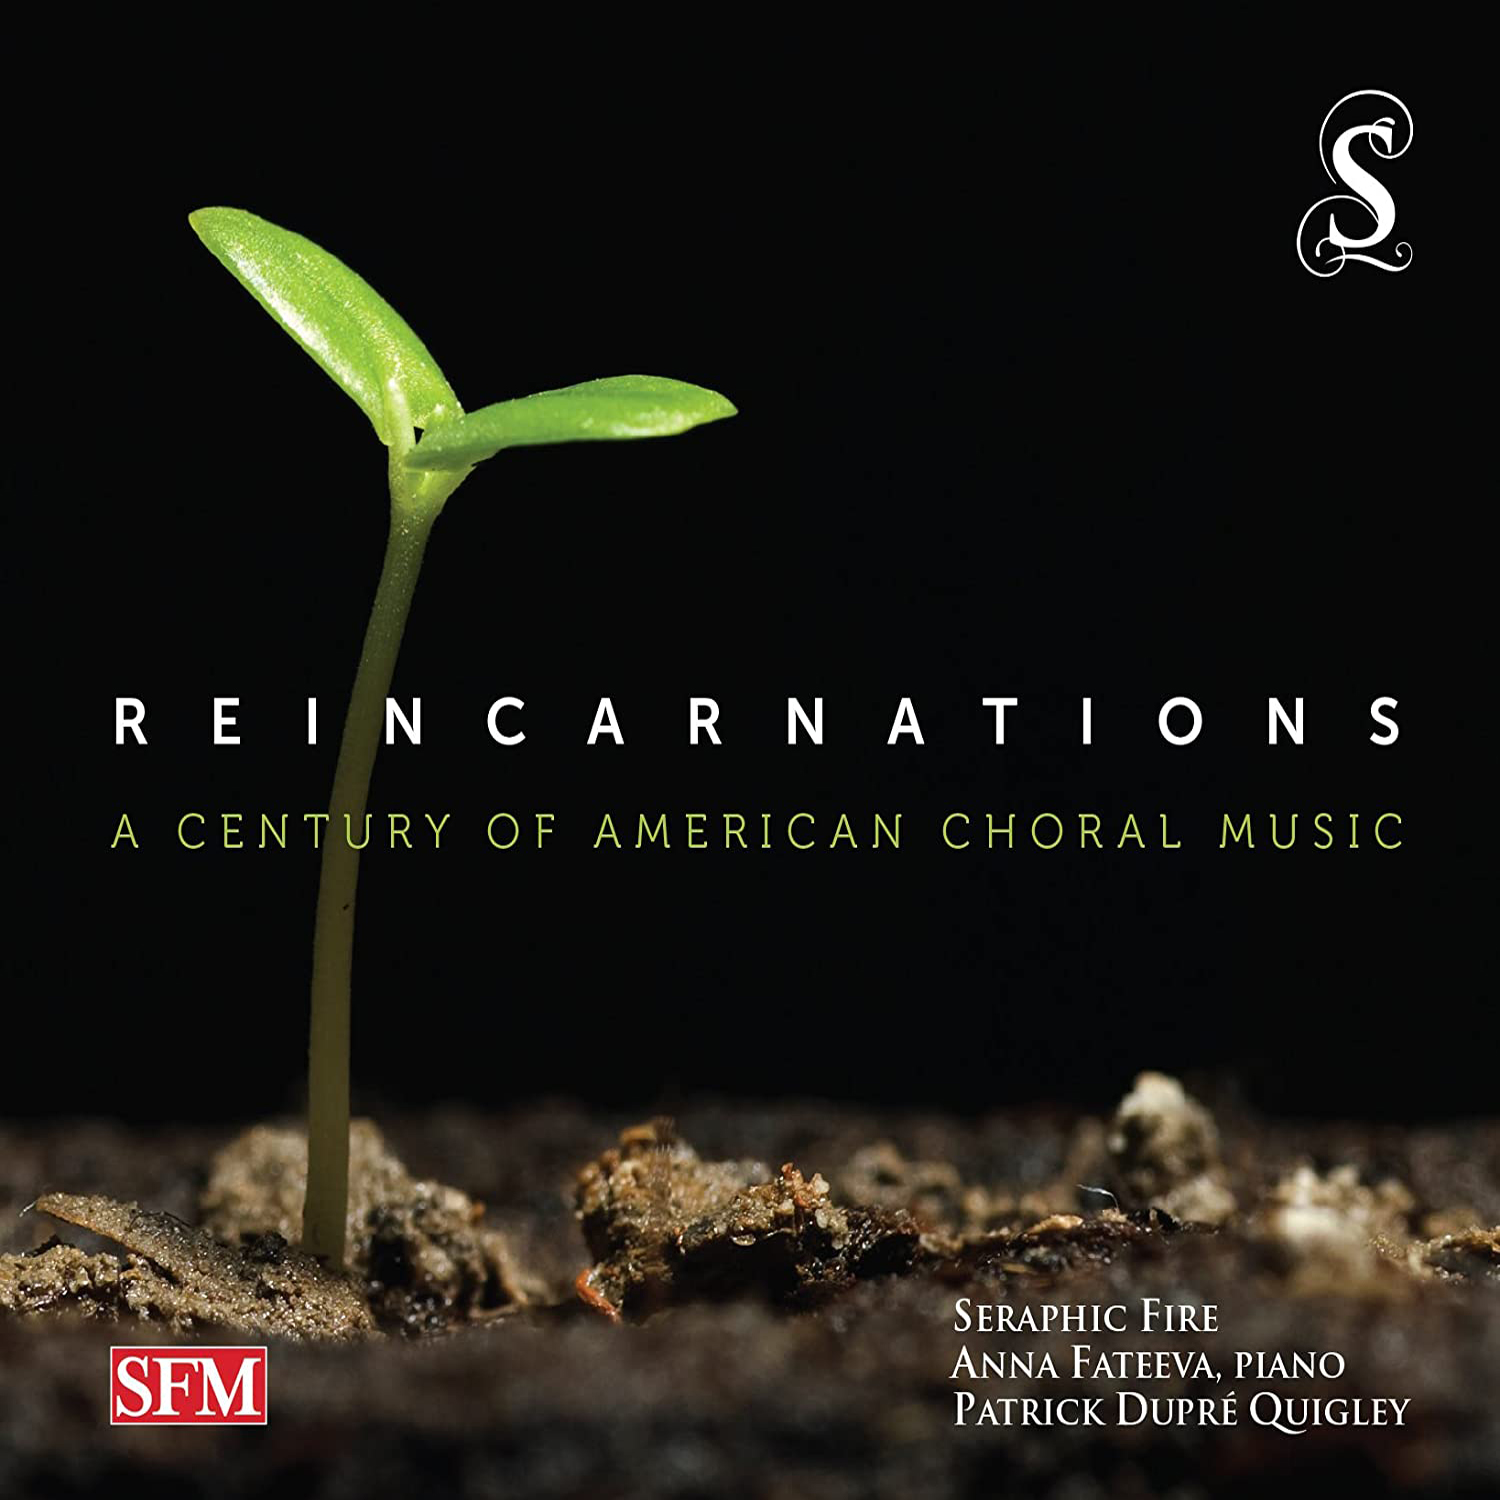 The Light of Common Day Seraphic Fire, Reincarnations: A Century of American Choral Music, Seraphic Fire Media